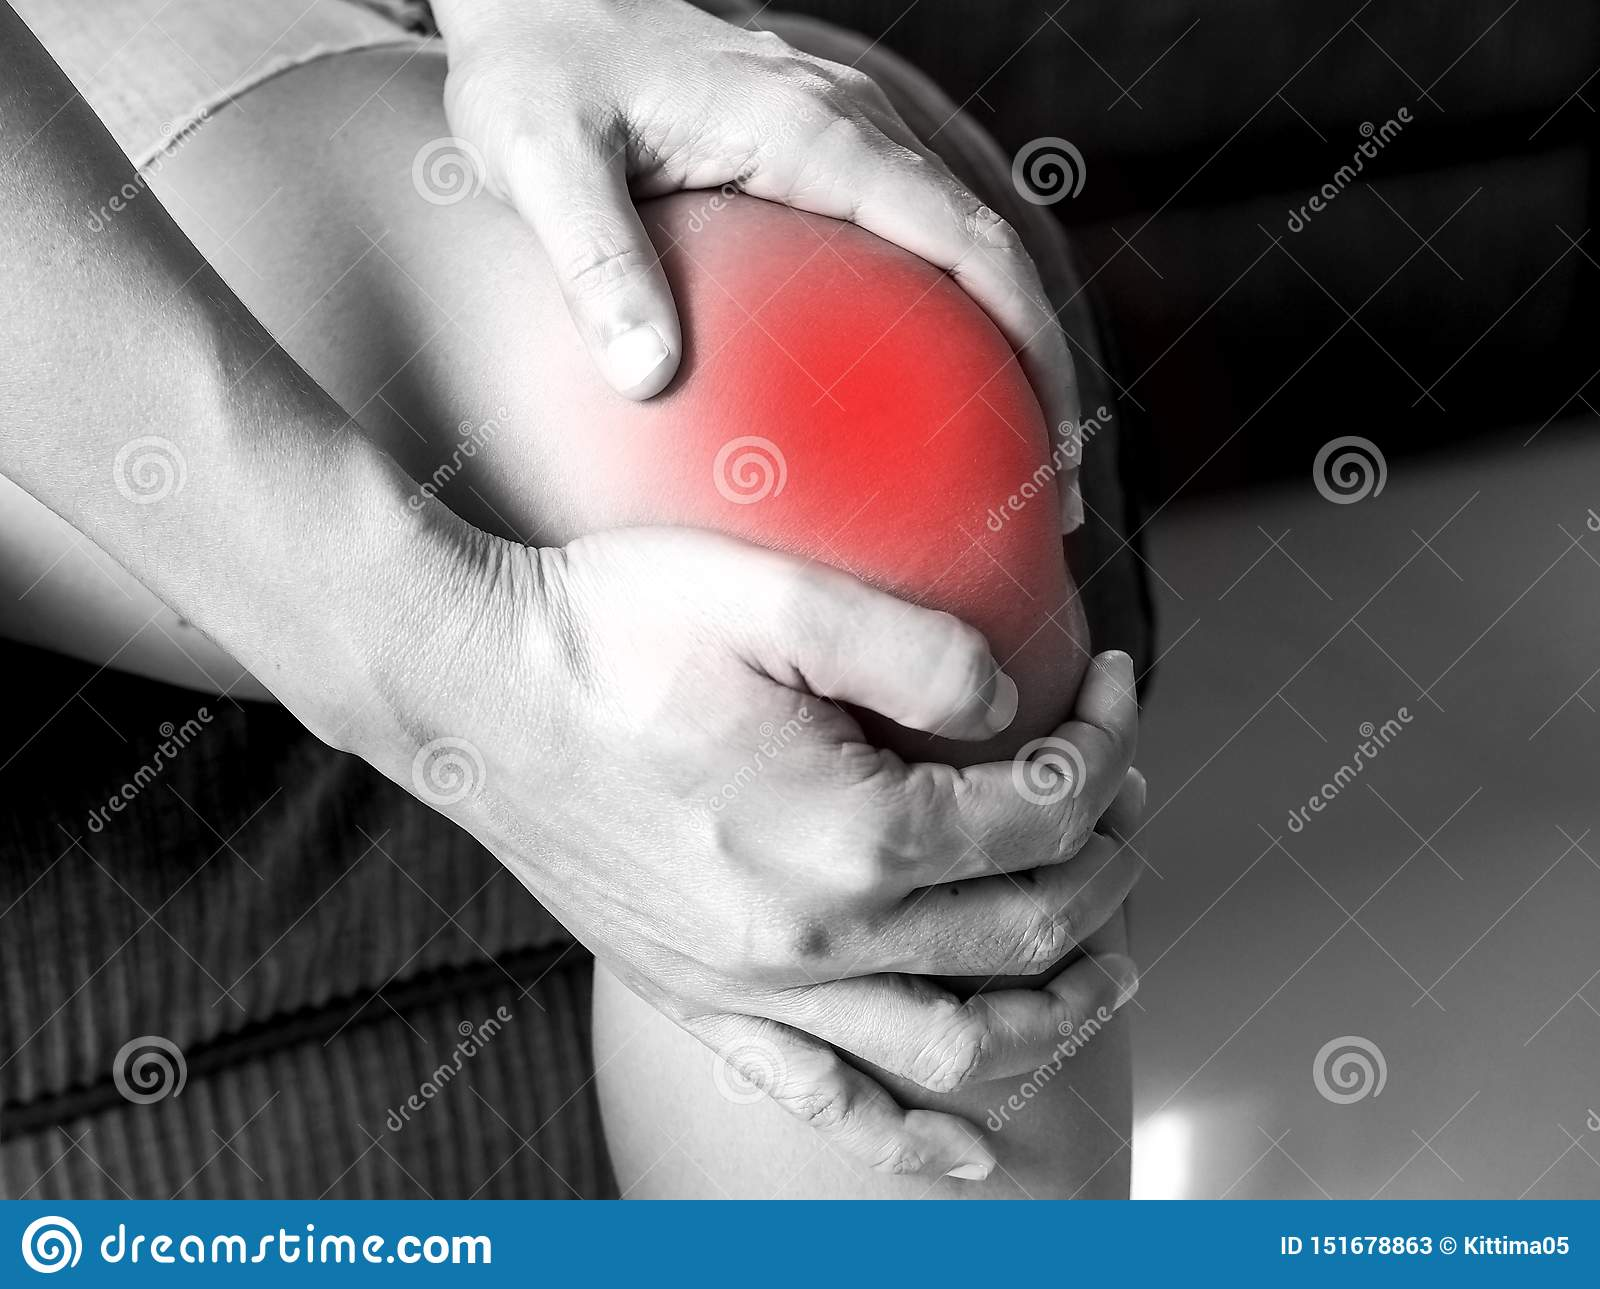 Asian people have knee pain, pain from health problems in the body.